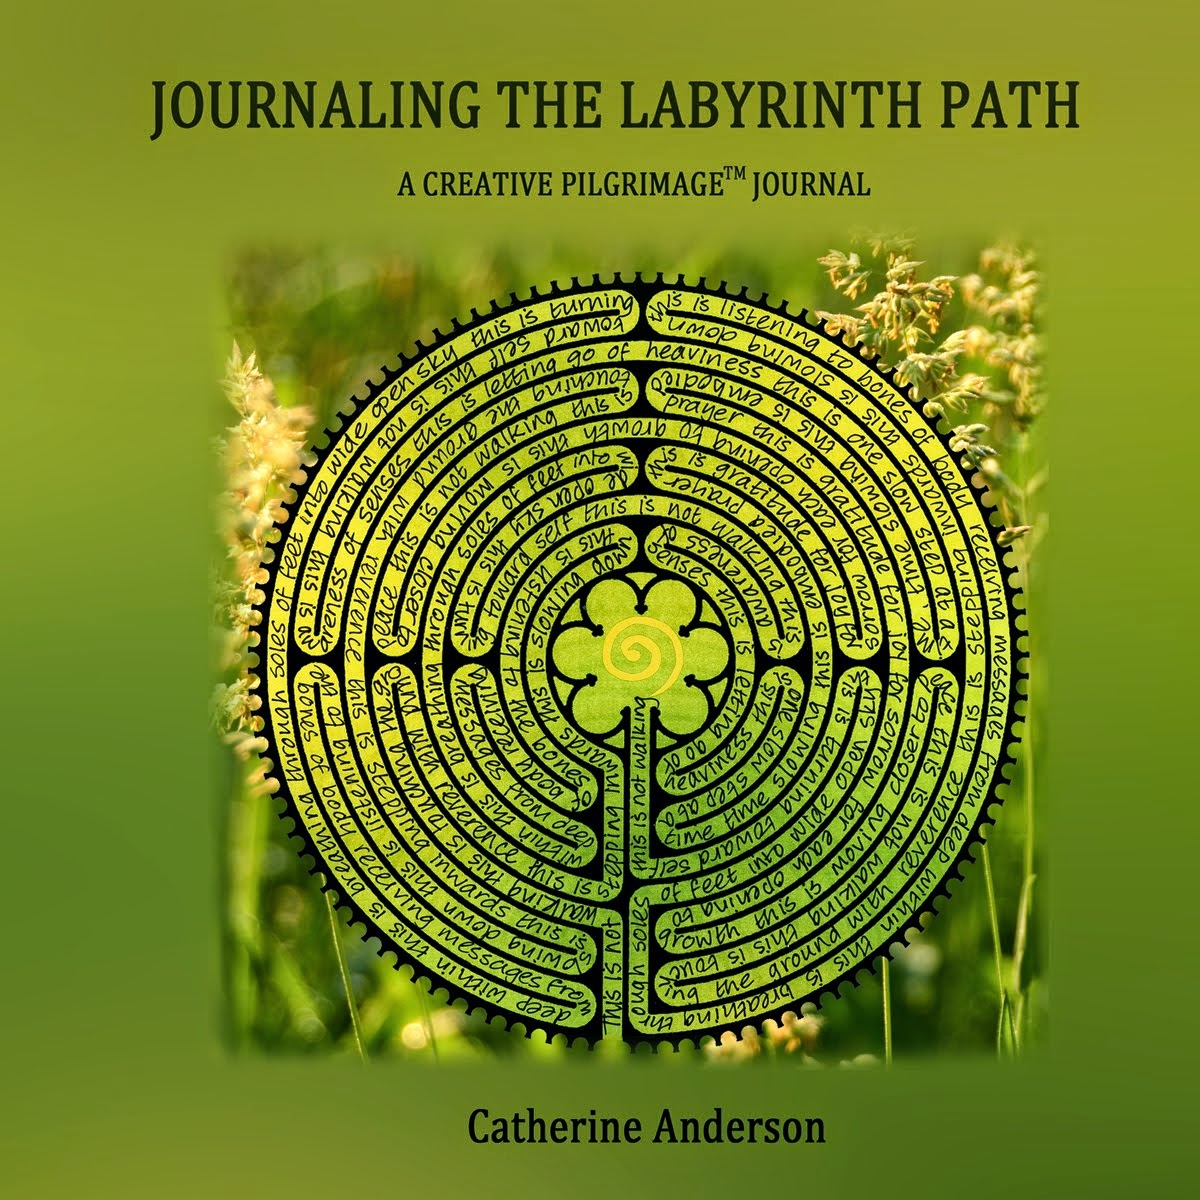 Journaling the Labyrinth